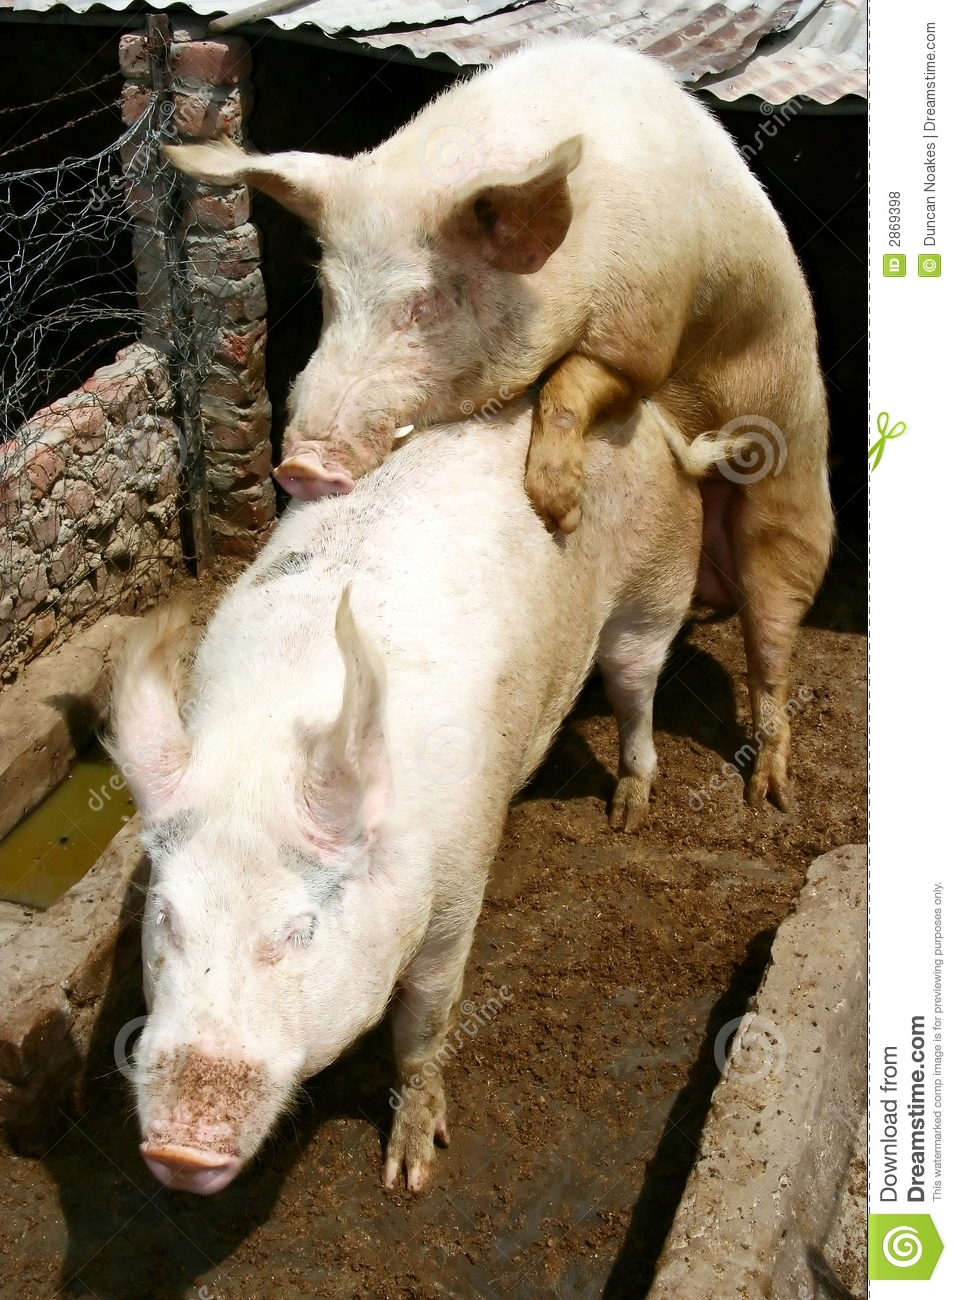 Pigs mating in their pigsty.